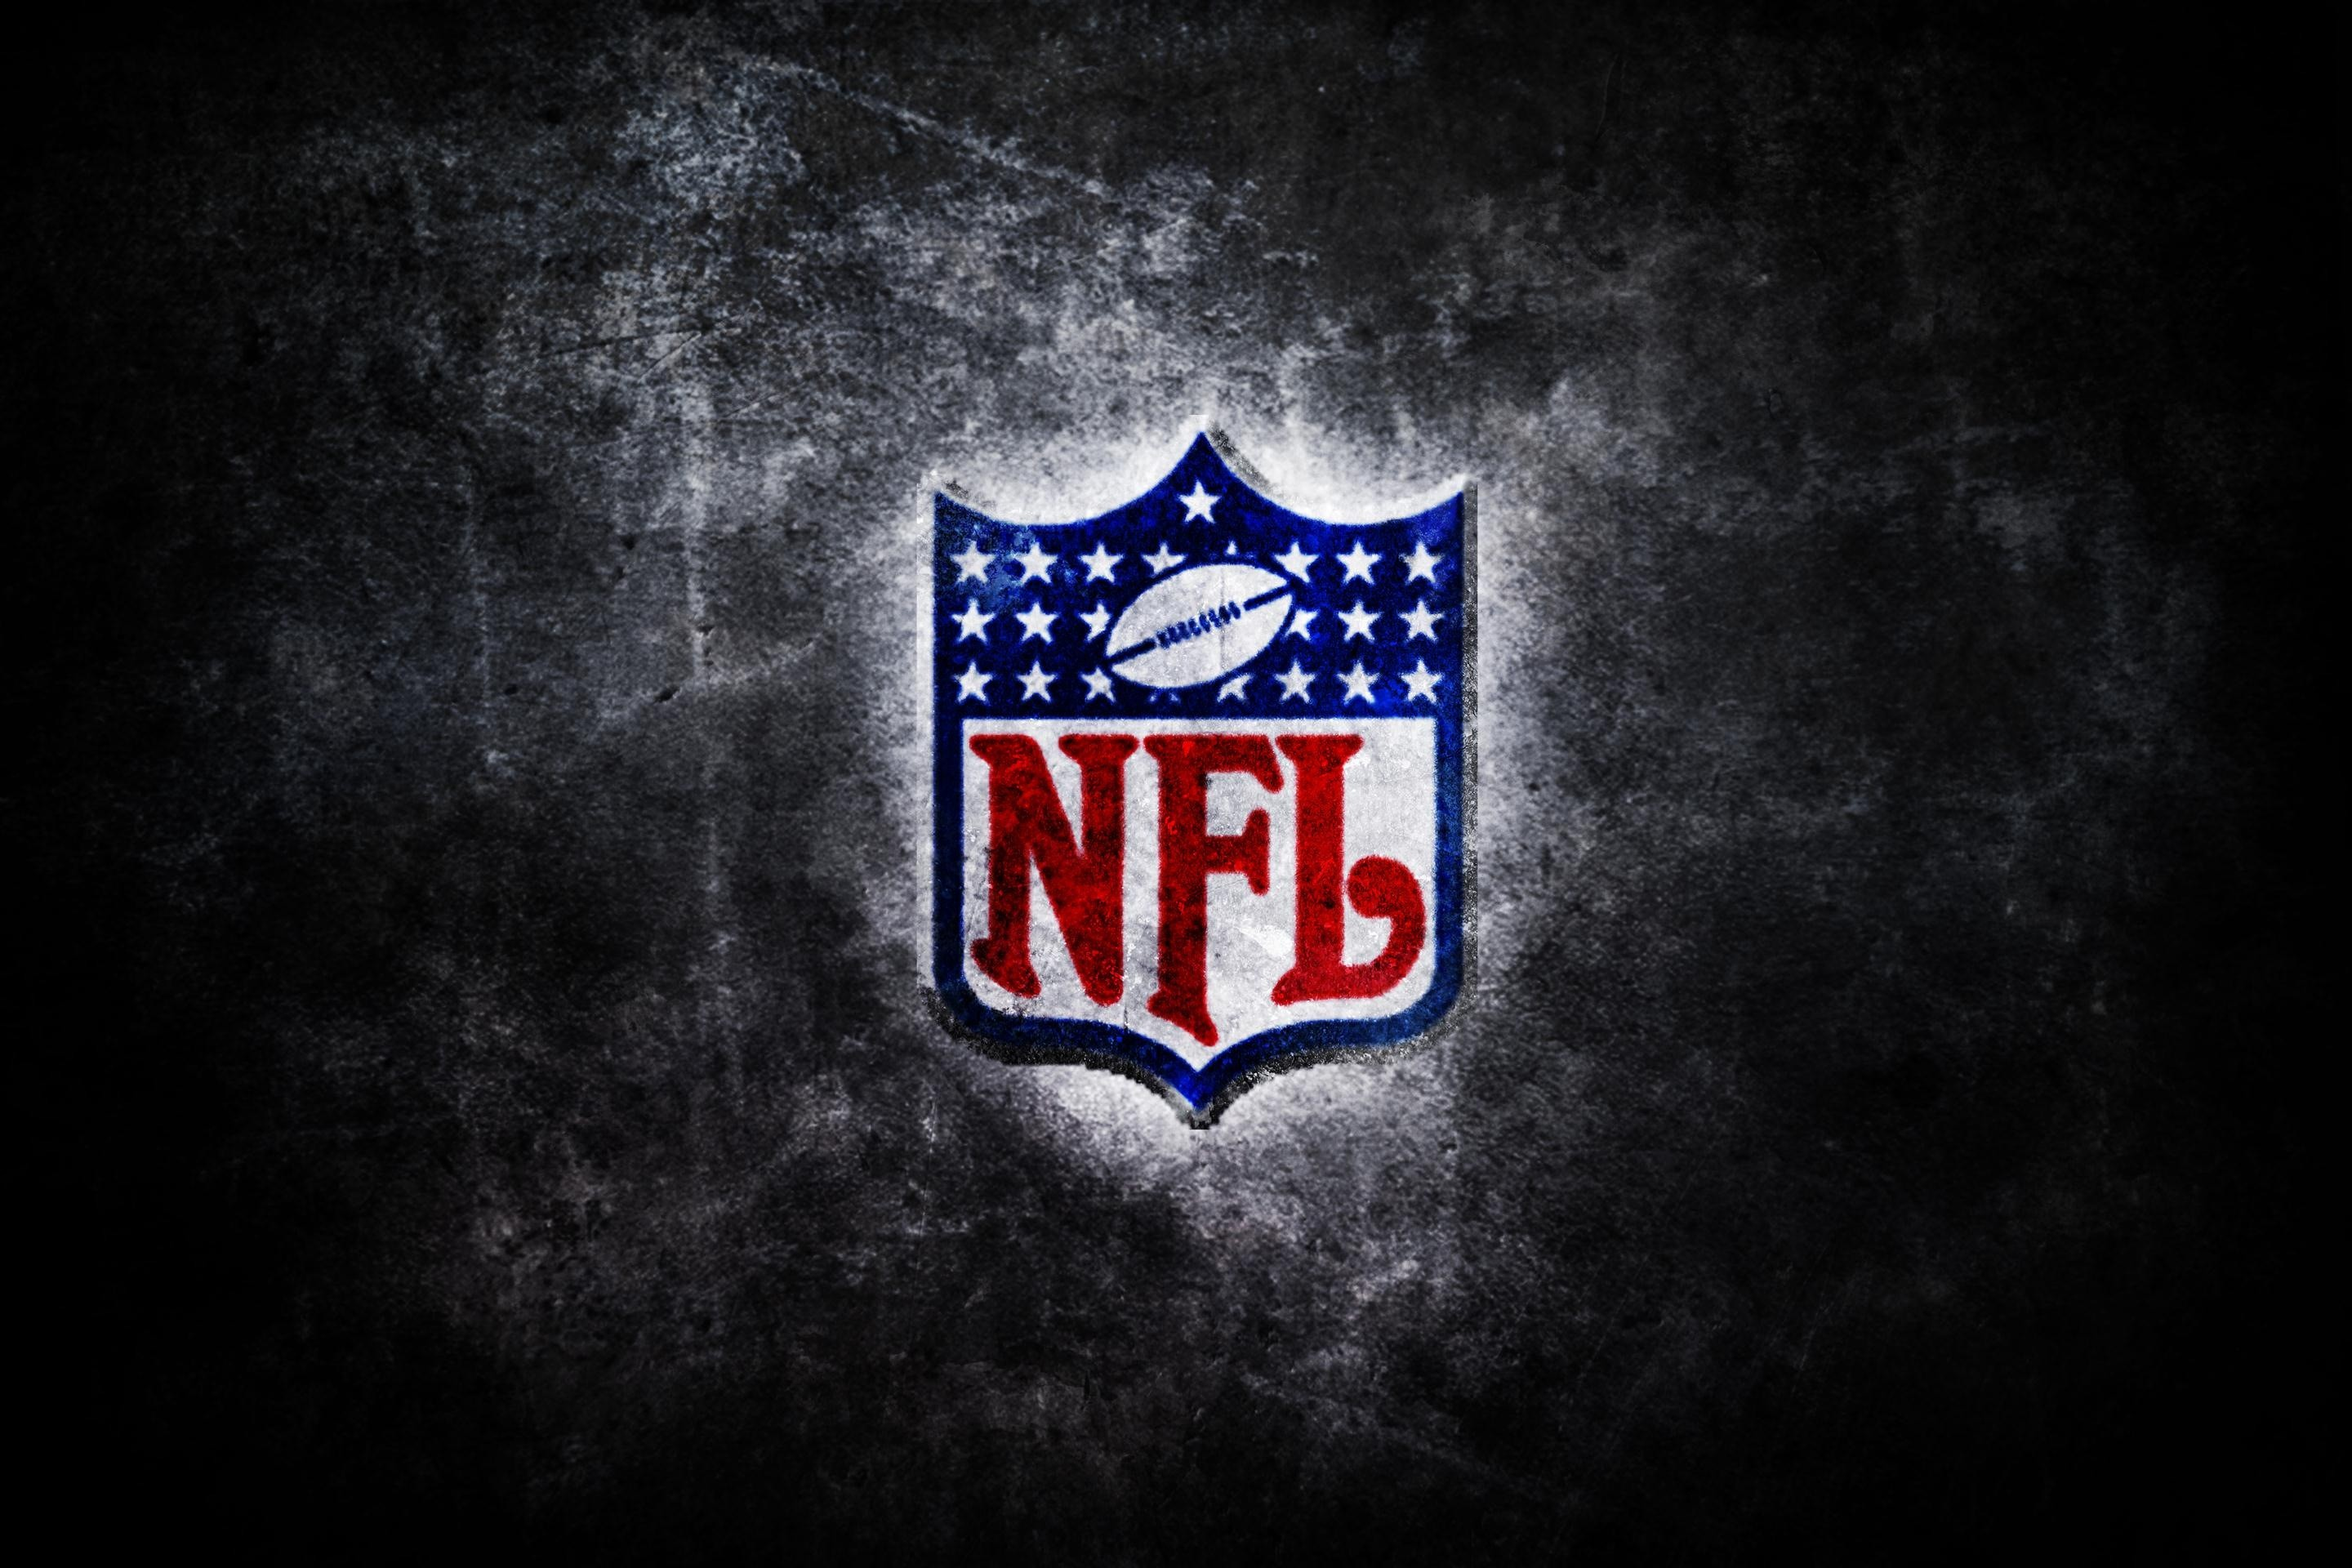 NFL HD Wallpapers